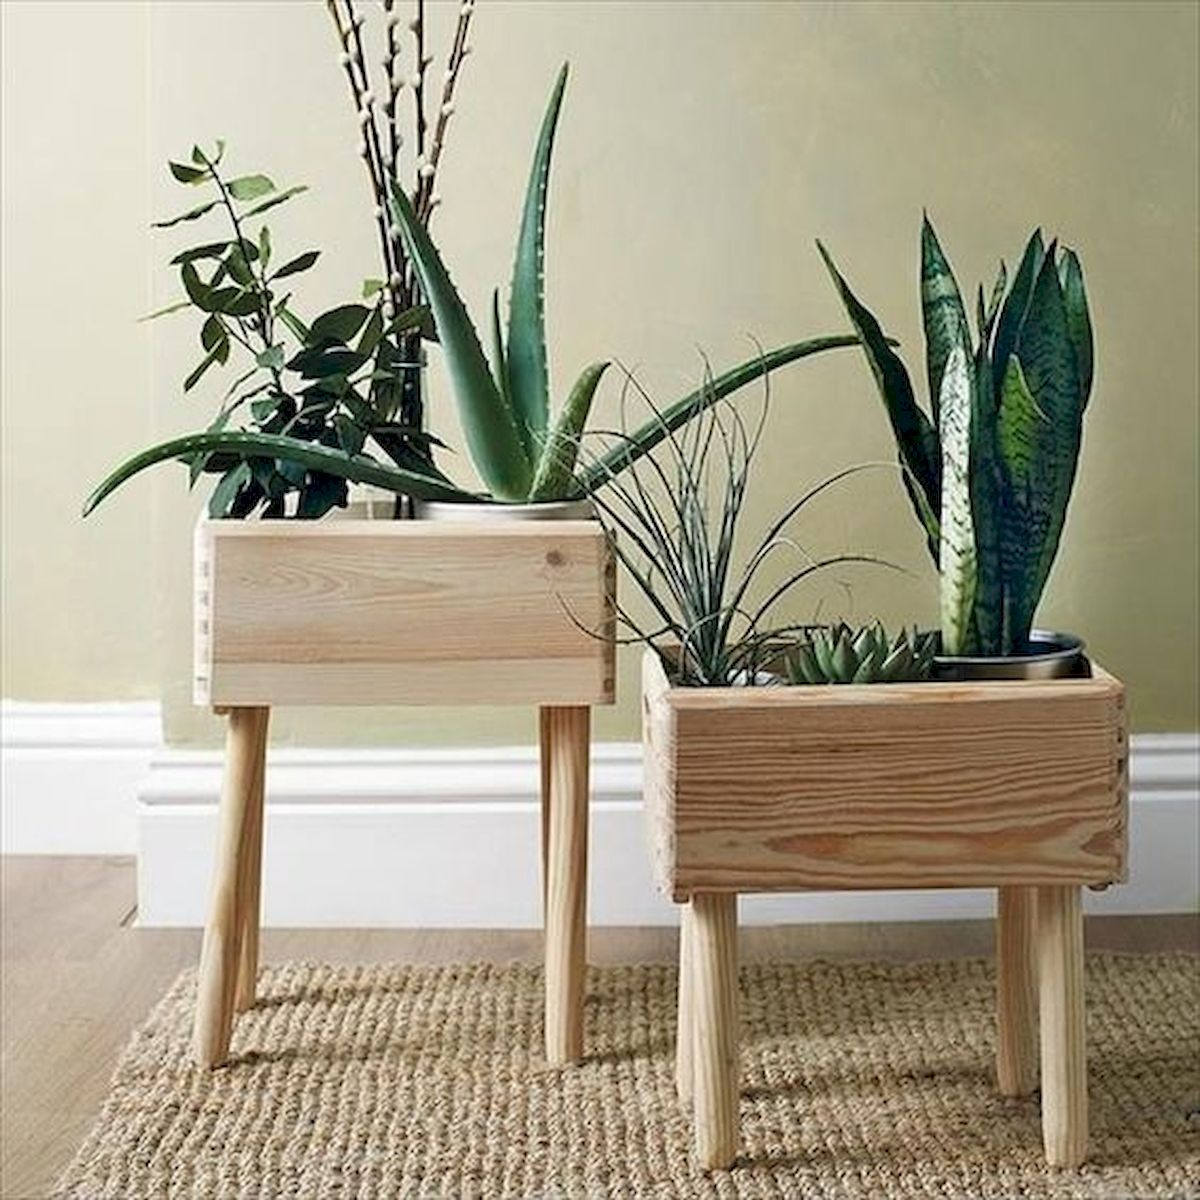 45 Awesome Furniture Ideas for Small House With Wood Project Ideas (1)